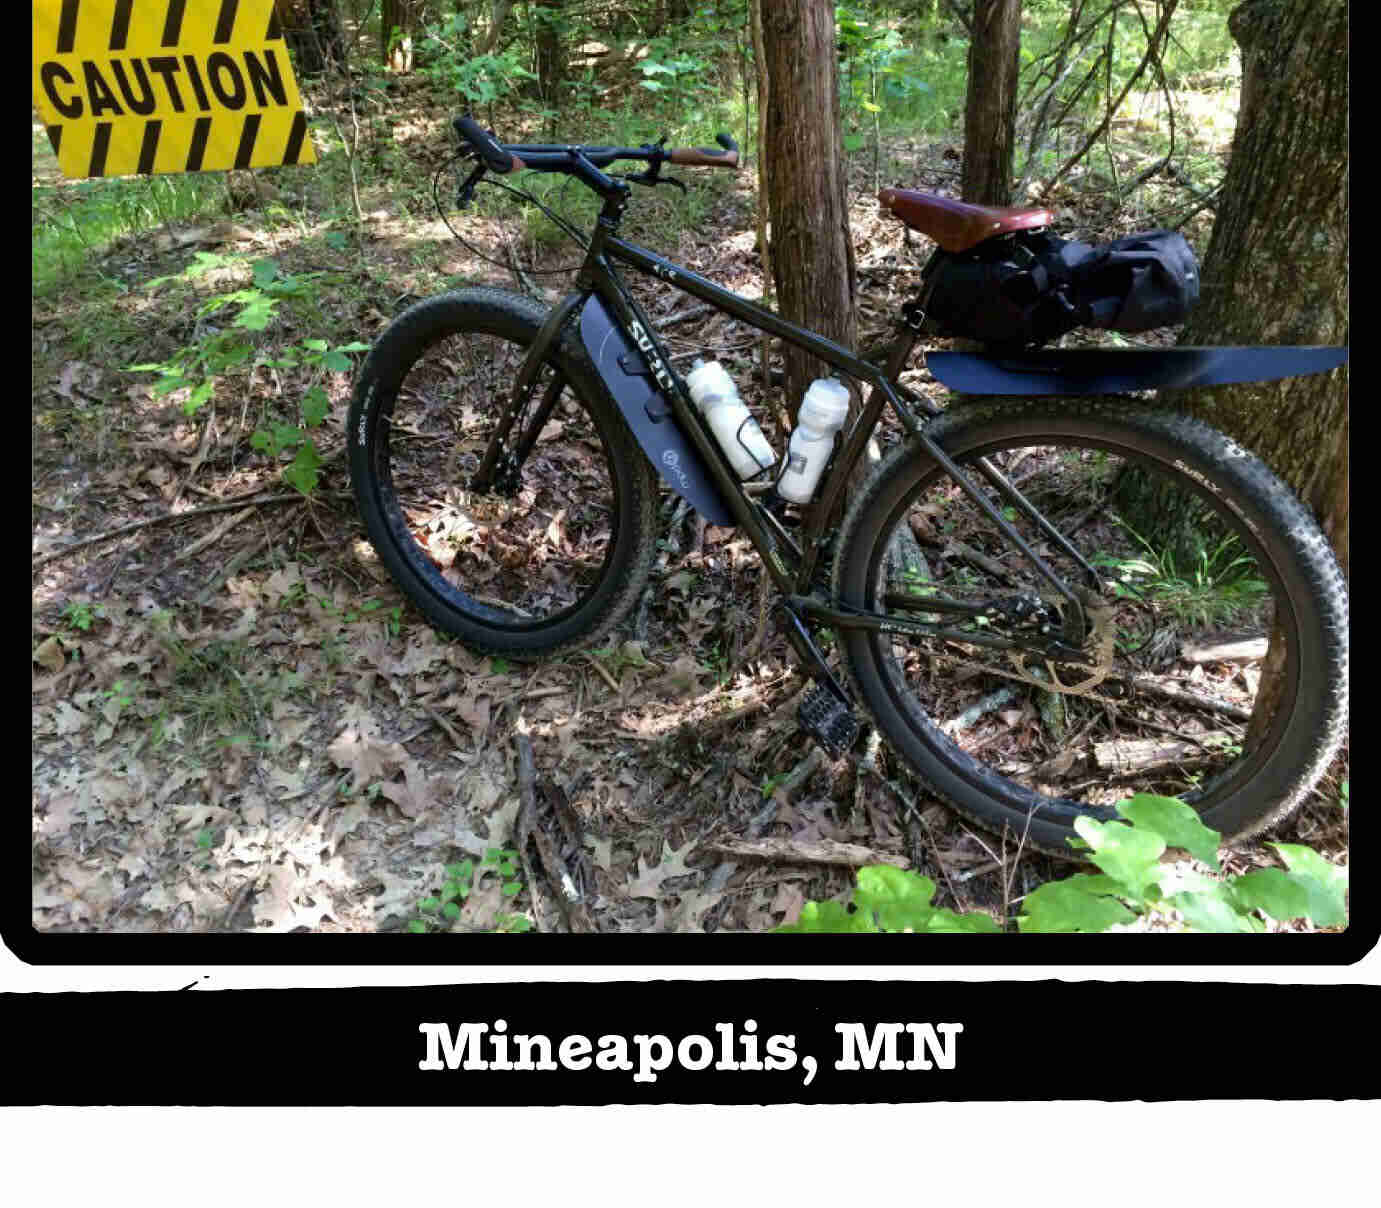 Left side view of a Surly ECR bike, olive, in the woods with a caution sign - Minneapolis, MN tag below image